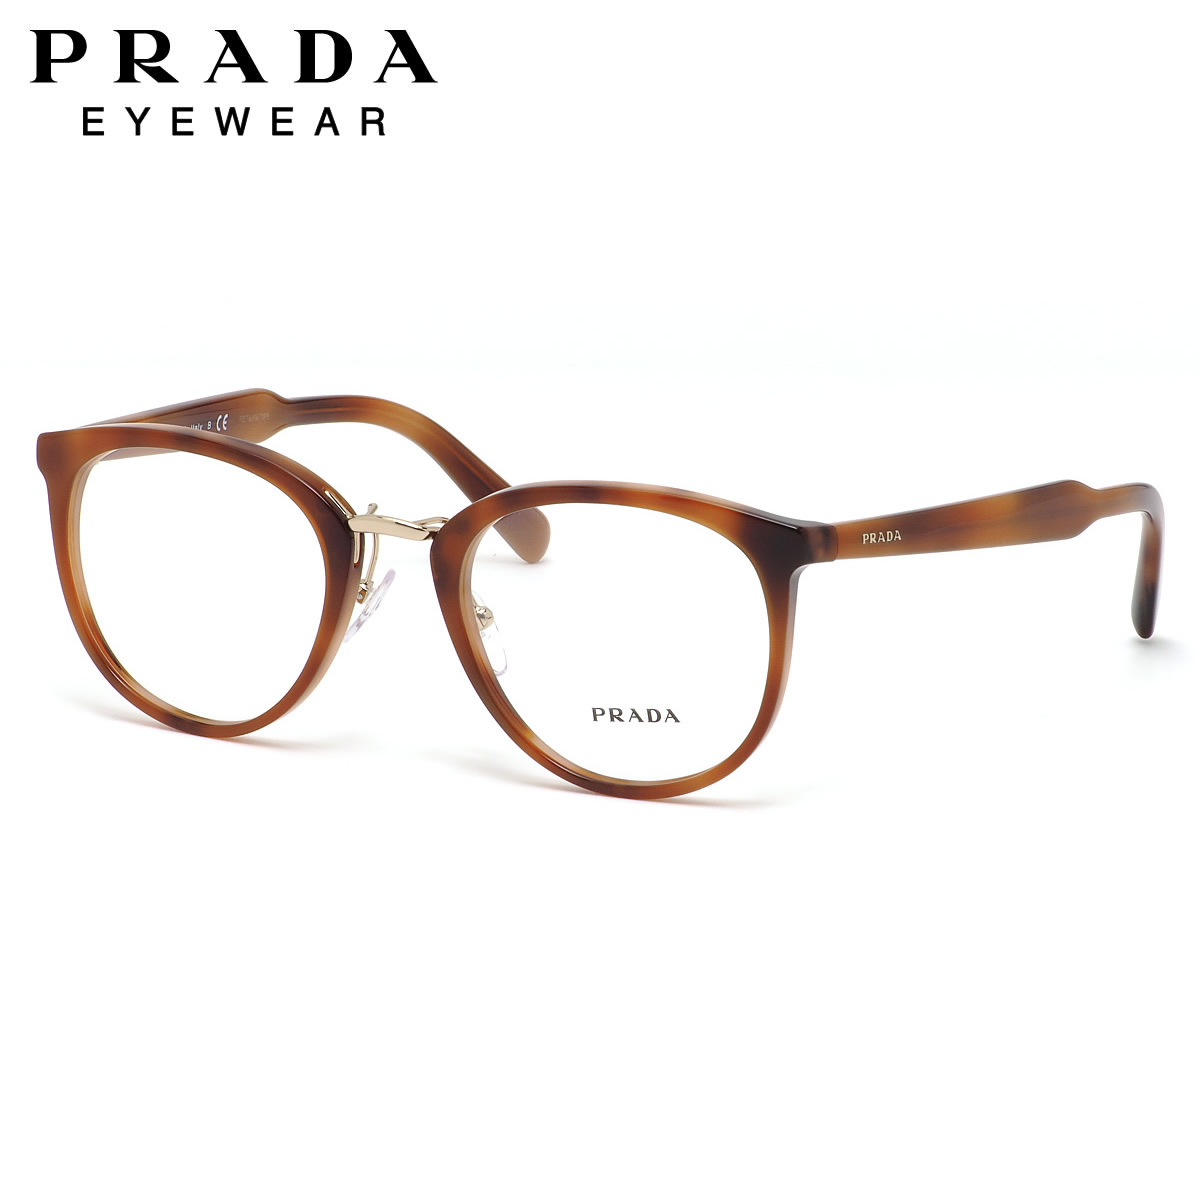 5ccd0de8568 Optical Shop Thats  Point up to eight times! -PRADA glasses PR03TV ...